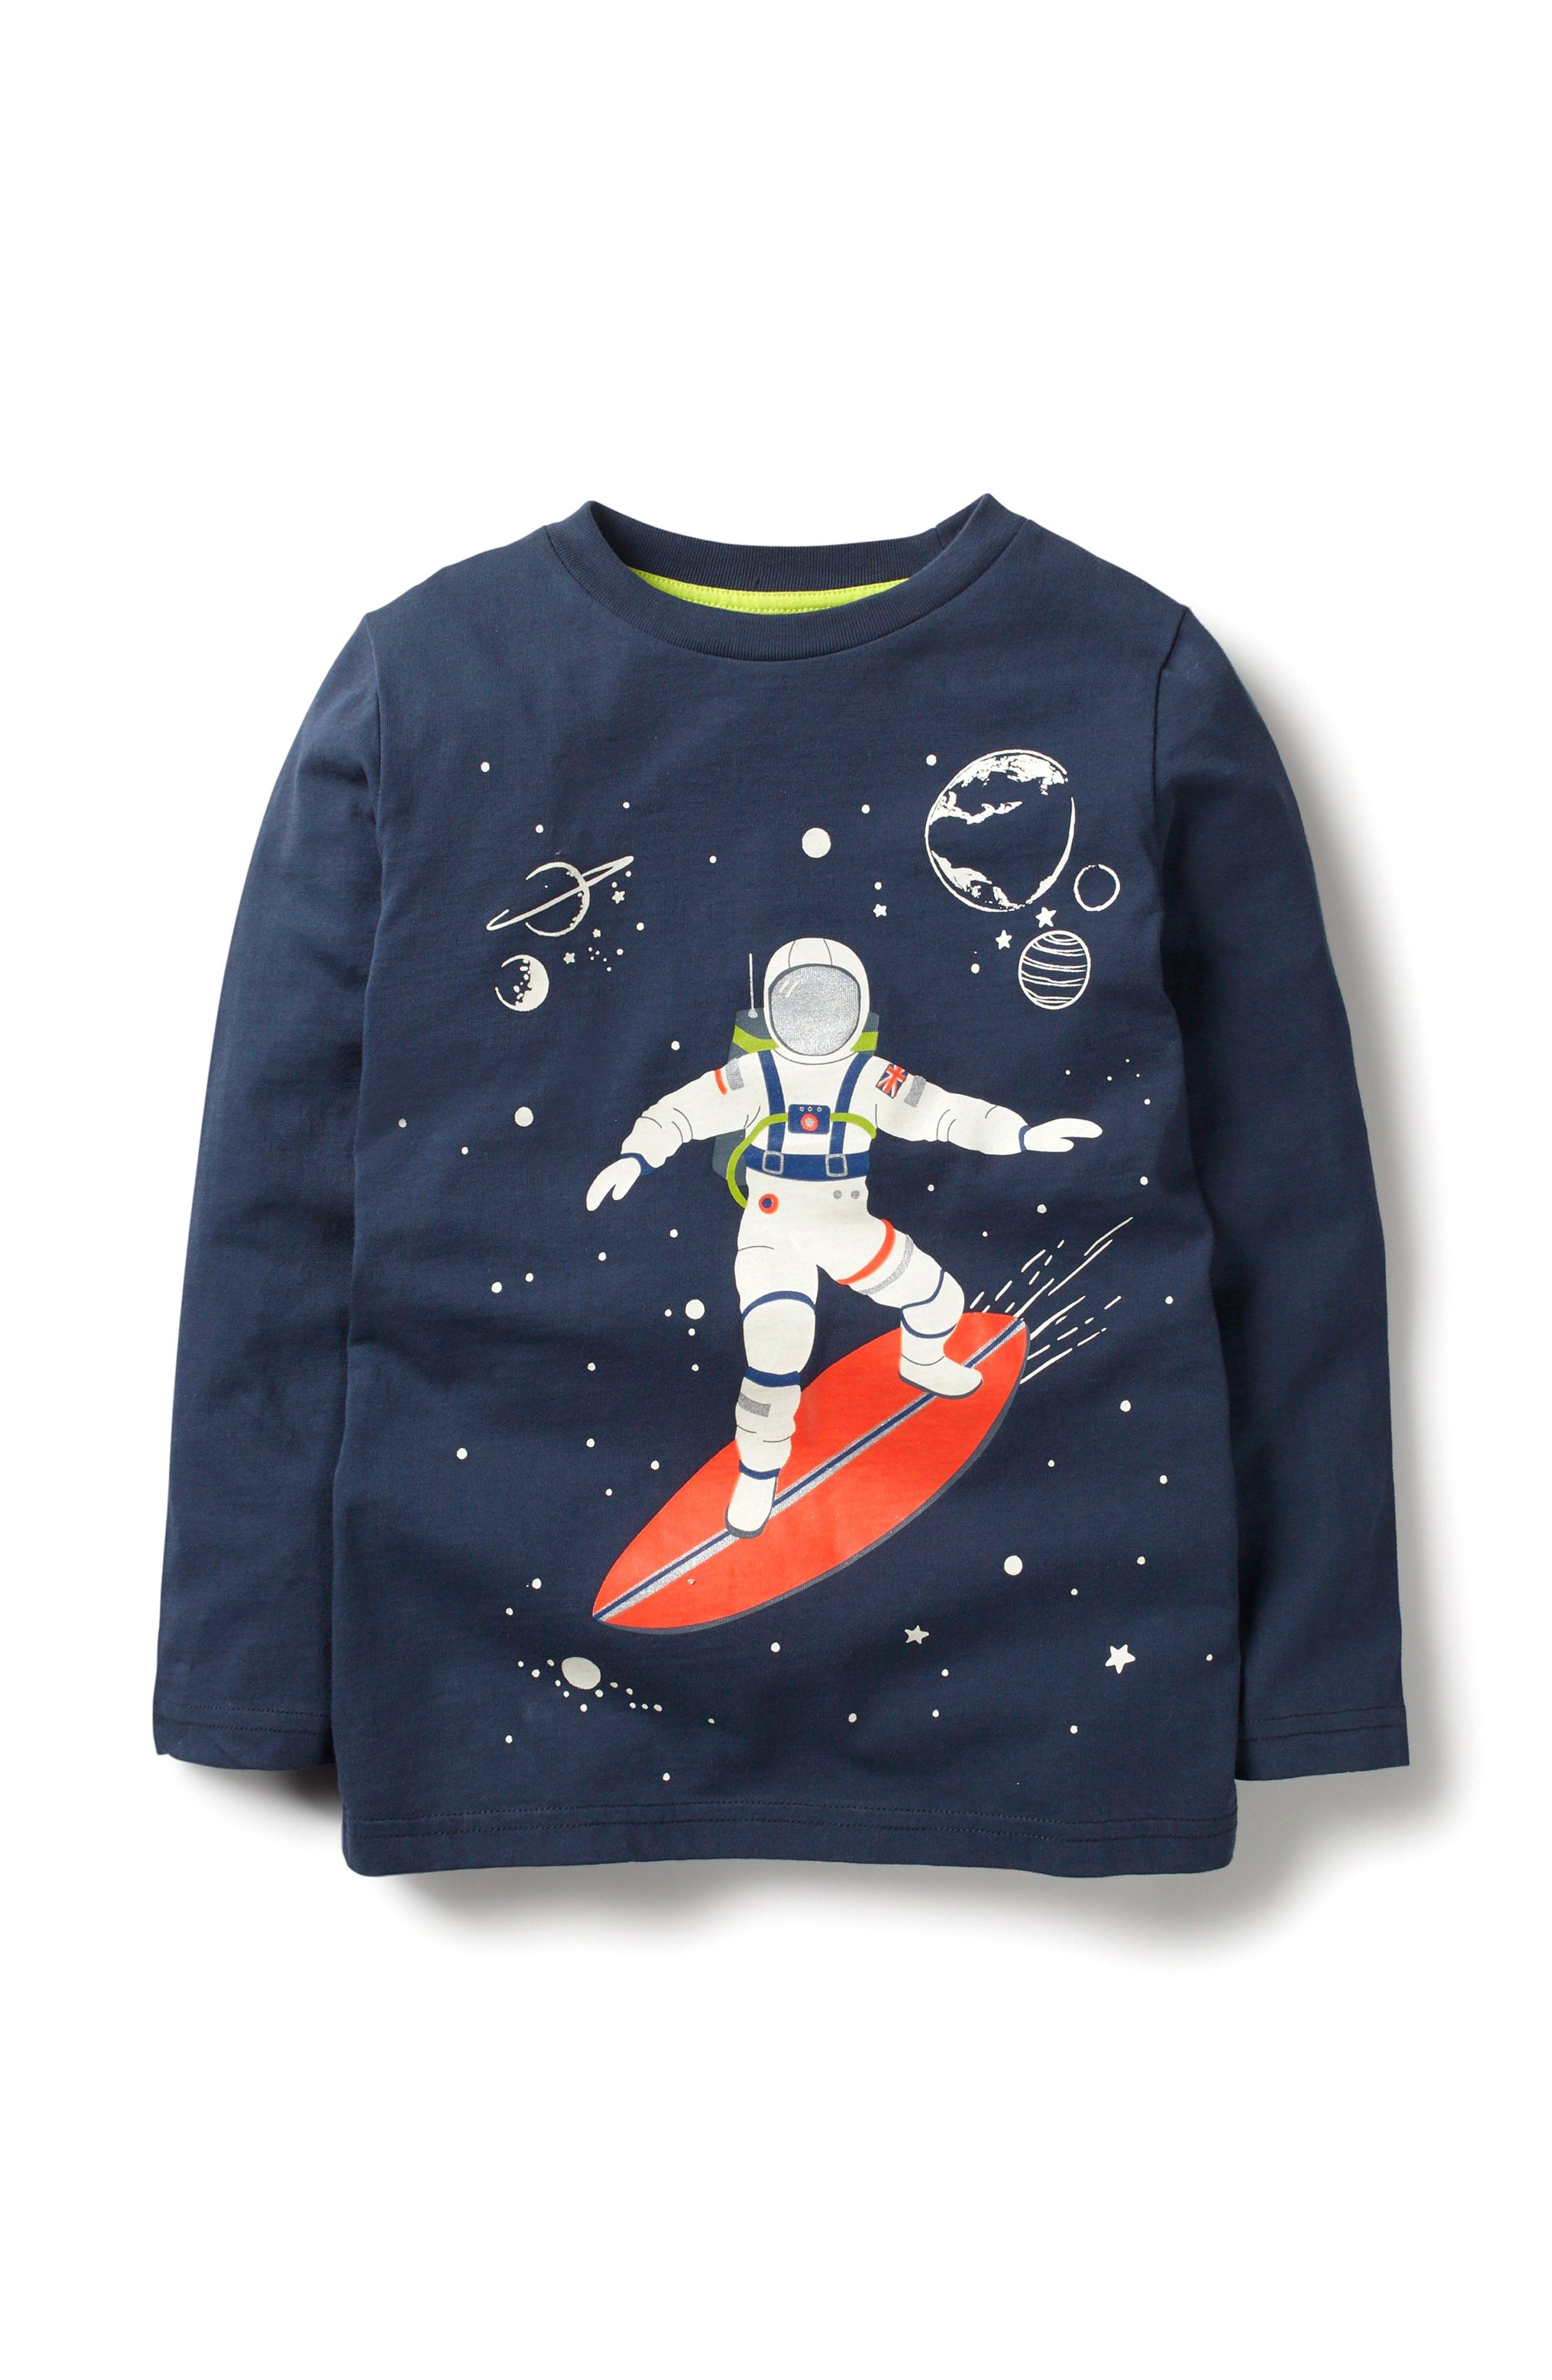 Glow in the Dark Space Long Sleeve T-Shirt,                         Main,                         color, School Navy Surfing Astronaut